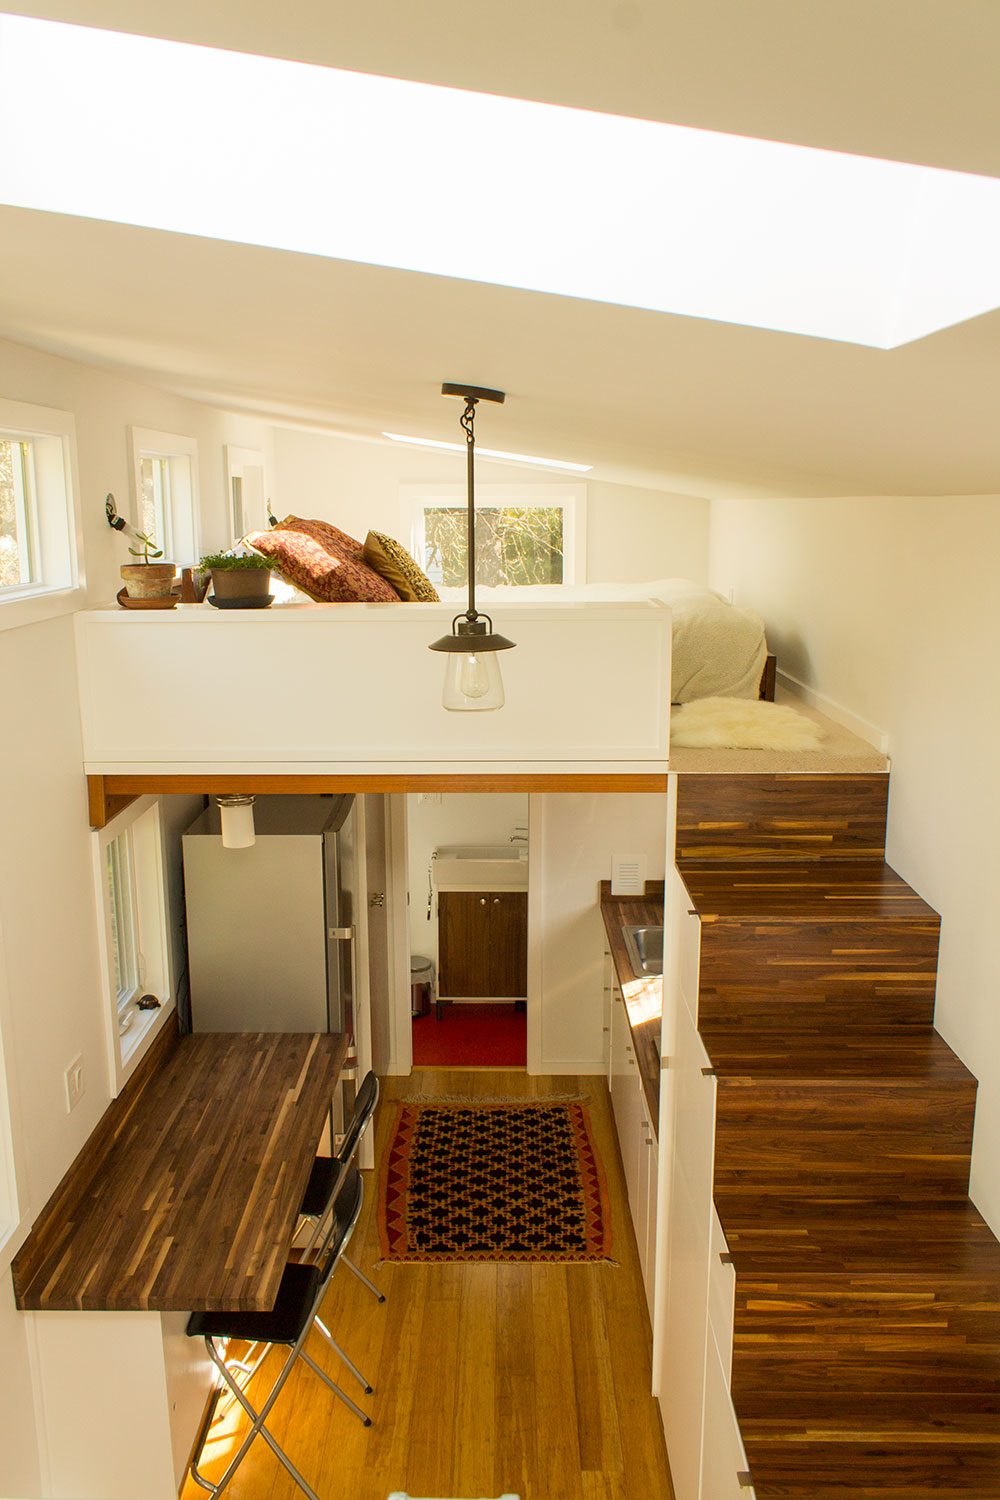 hikari box tiny house interior from loft. Interior Design Ideas. Home Design Ideas